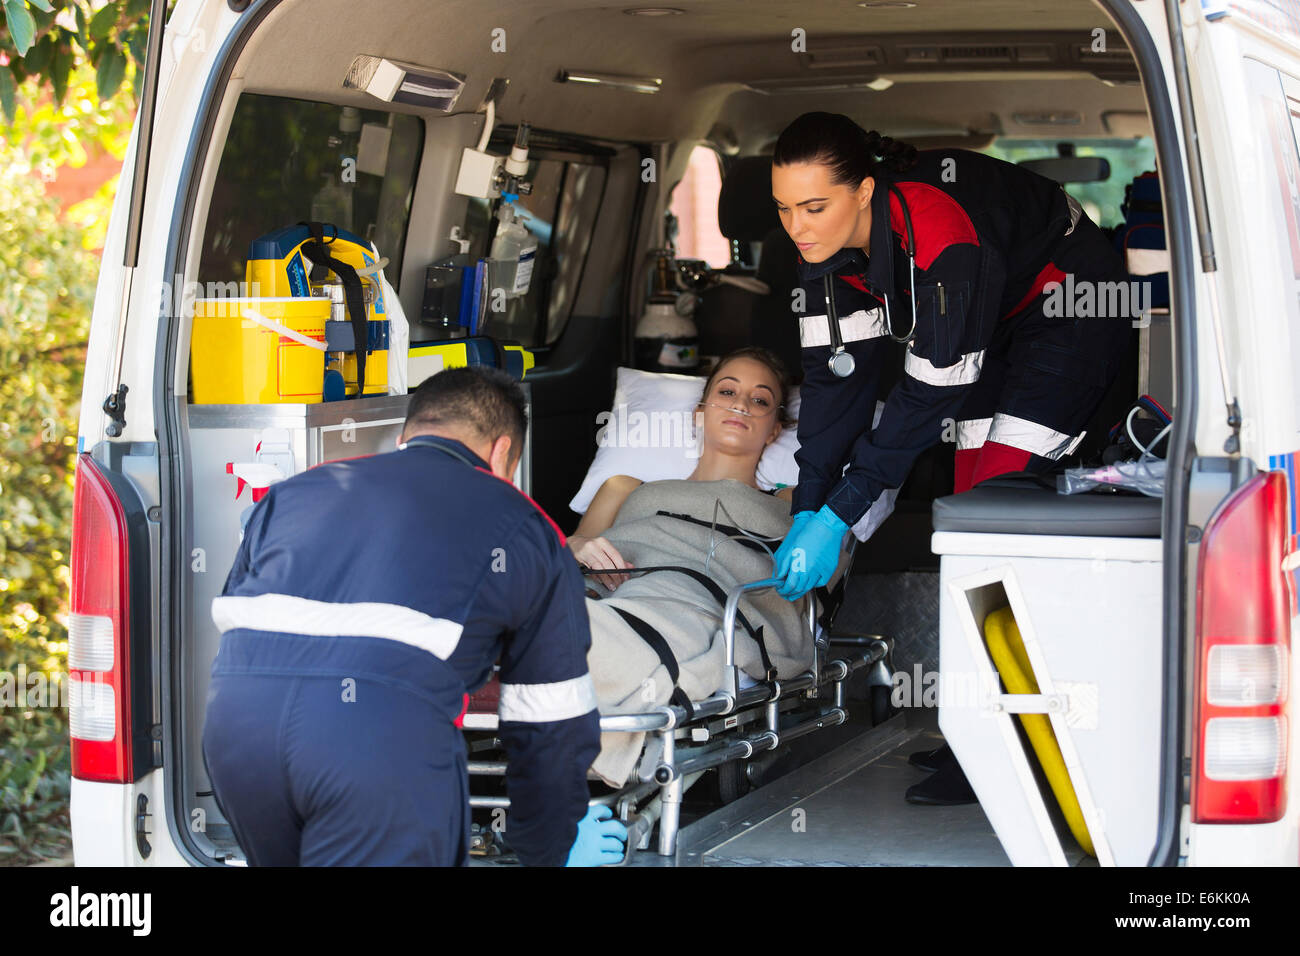 emergency medical staff team transporting patient to hospital with ambulance - Stock Image